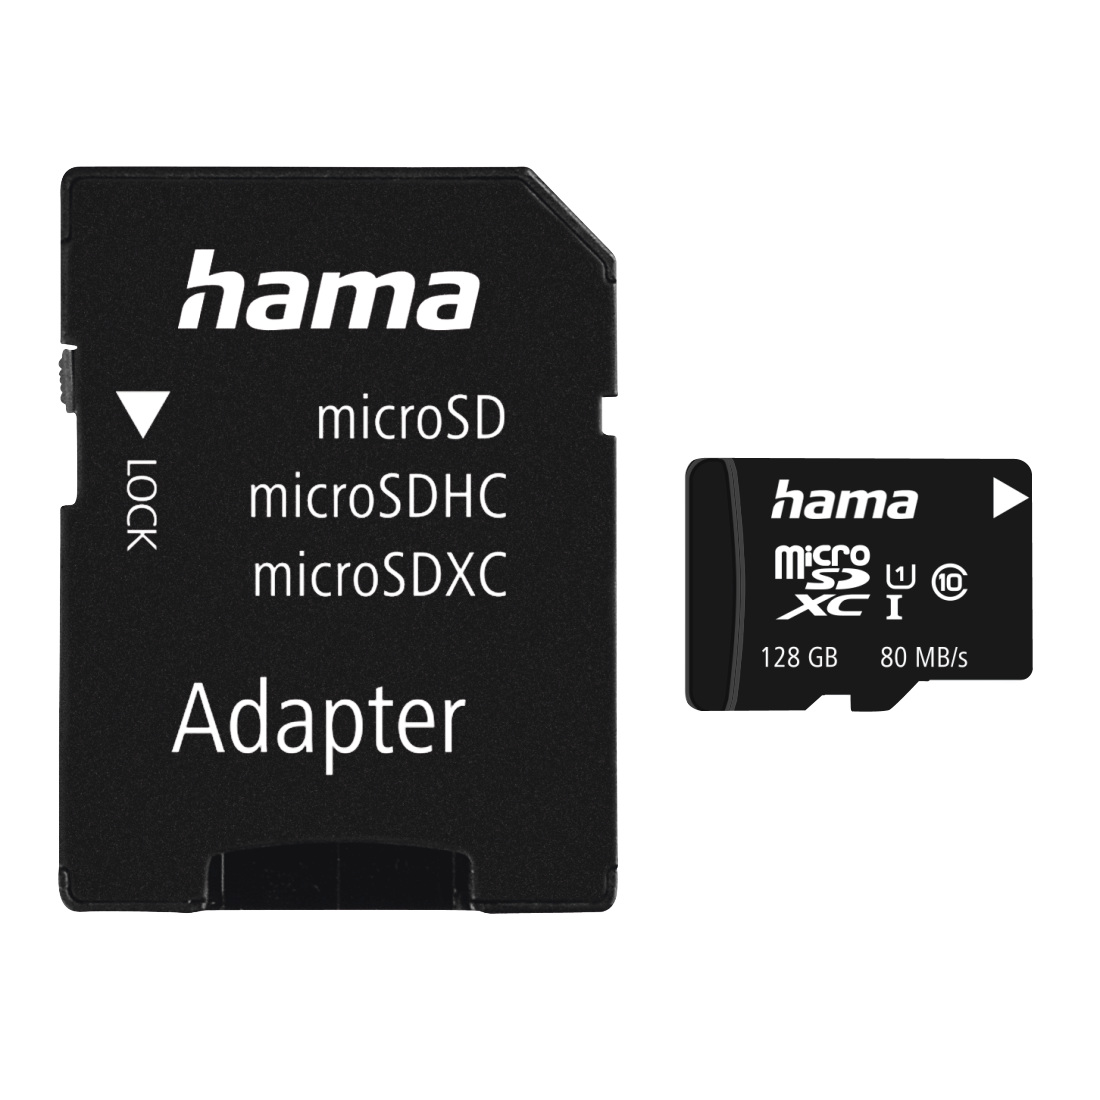 abx High-Res Image - Hama, microSDXC 128GB Class 10 UHS-I 80MB/s + Adapter/Photo